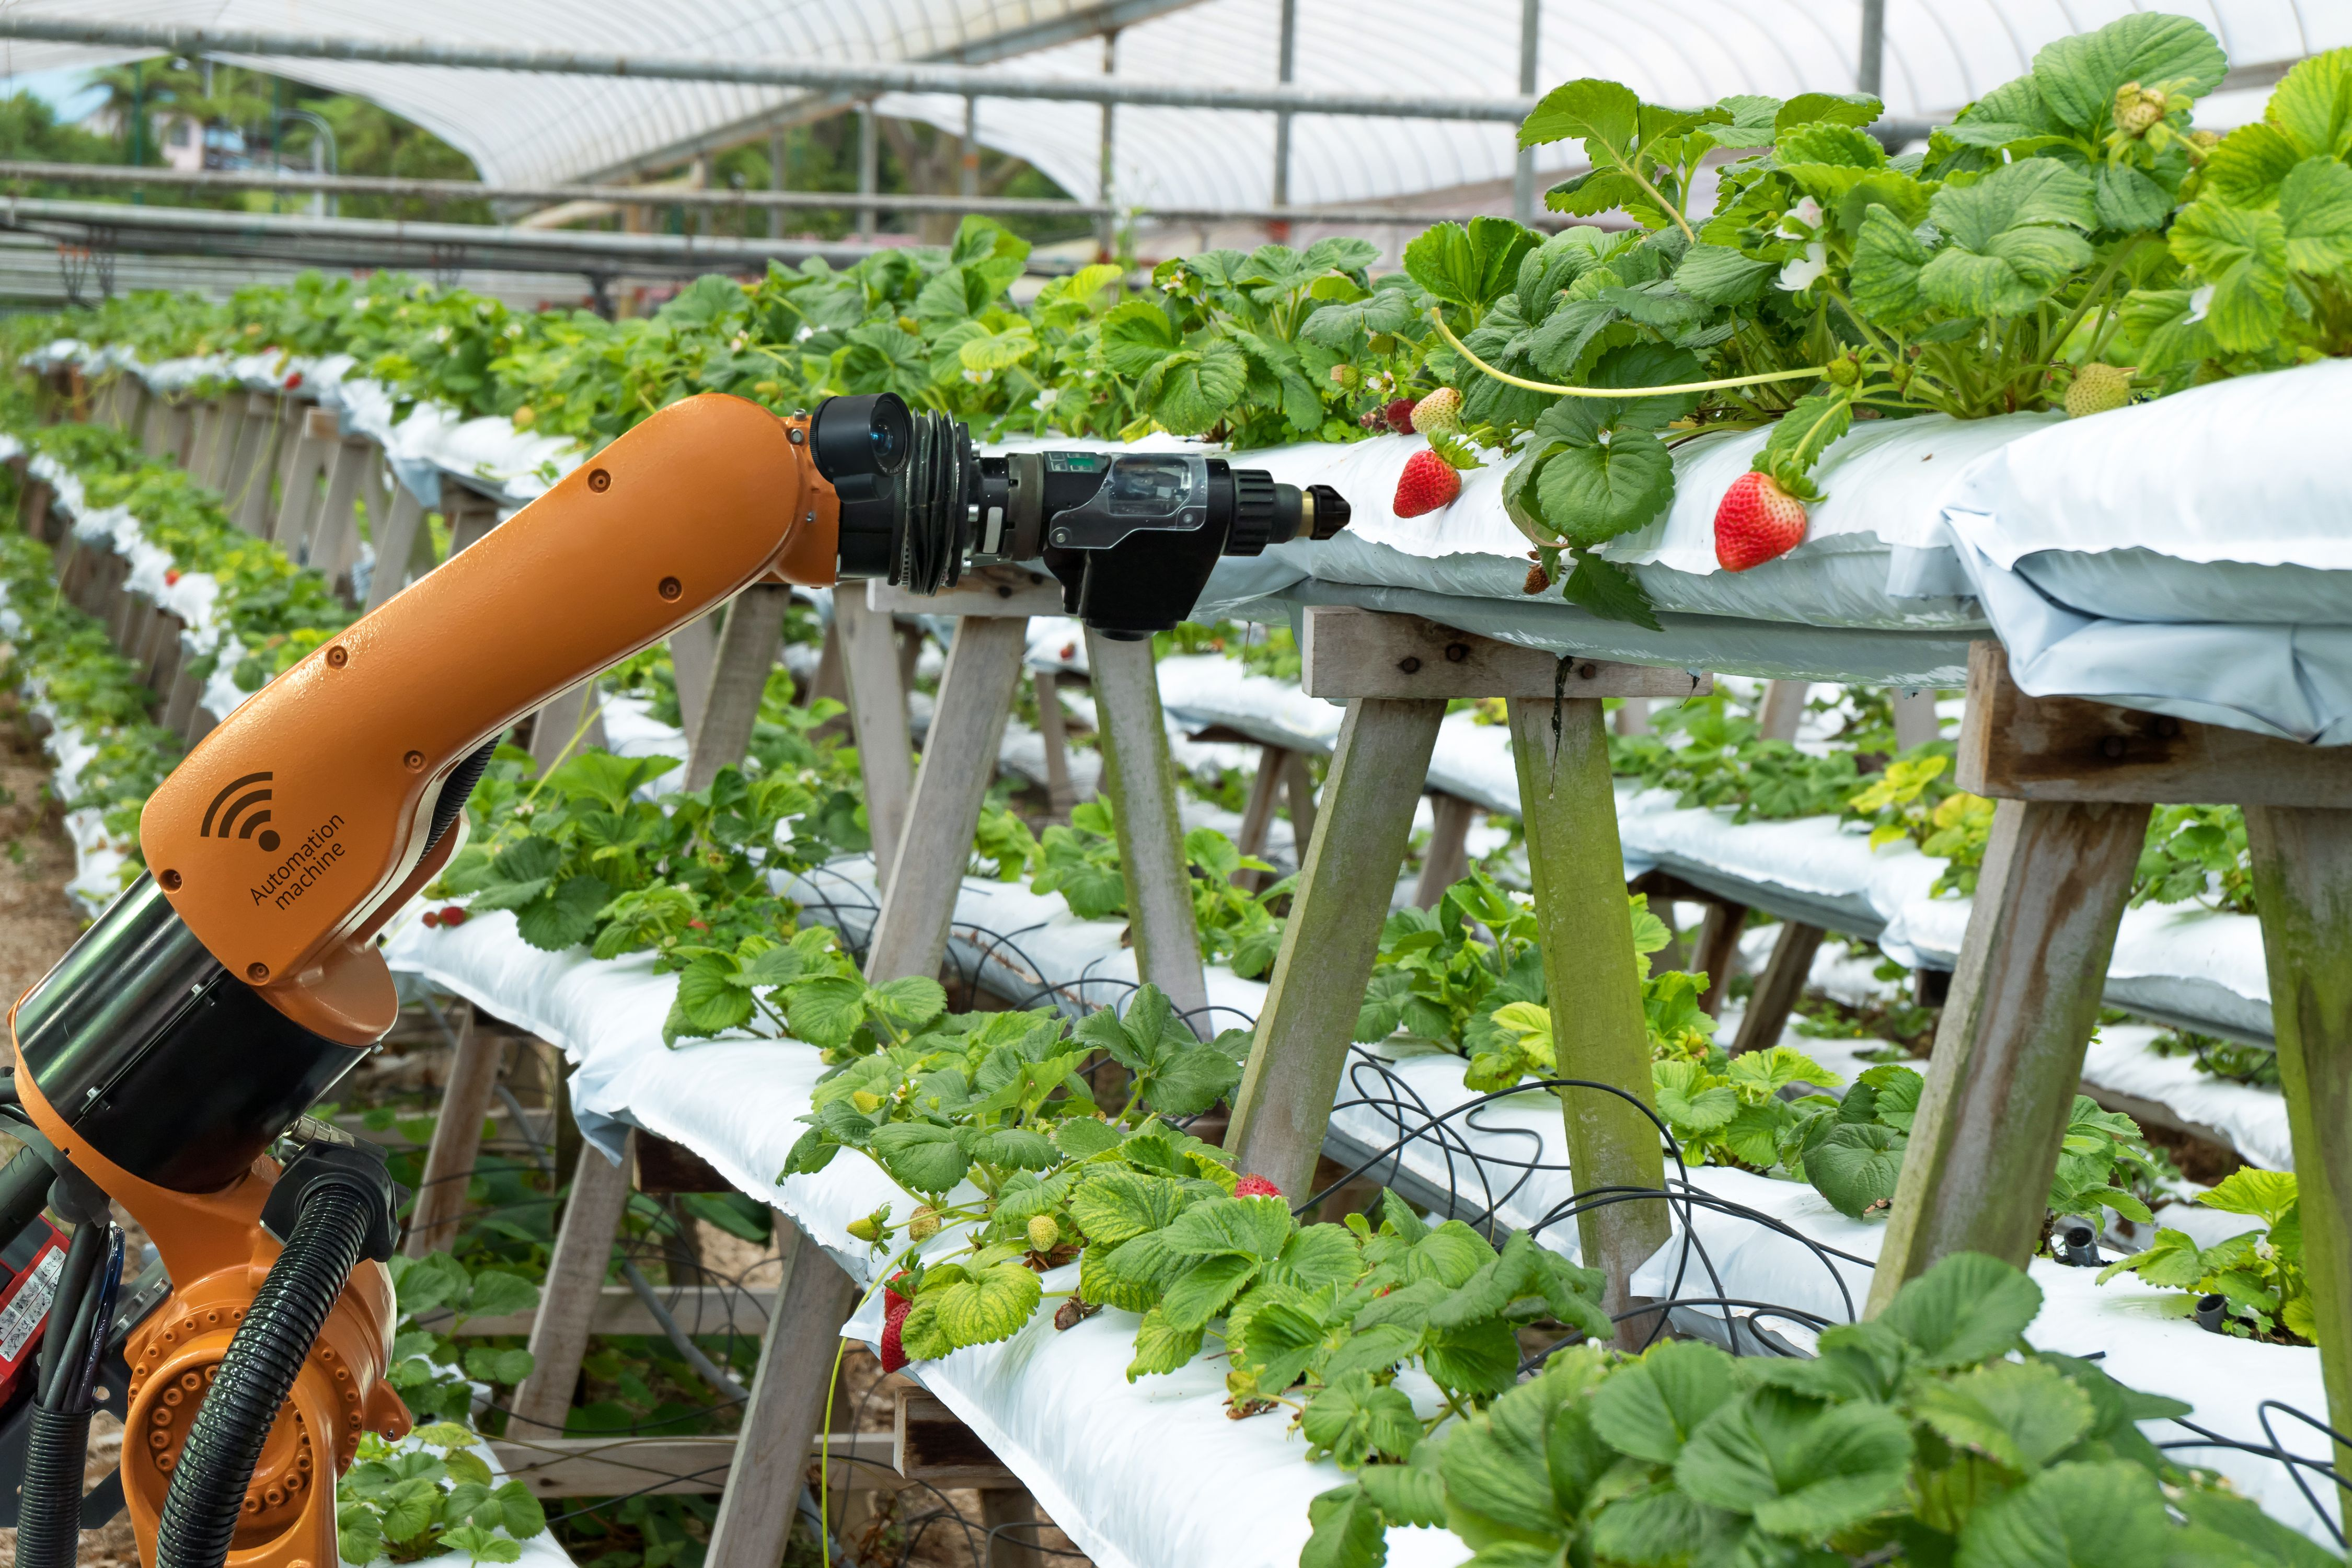 A small group of farm robotics startups is taking on